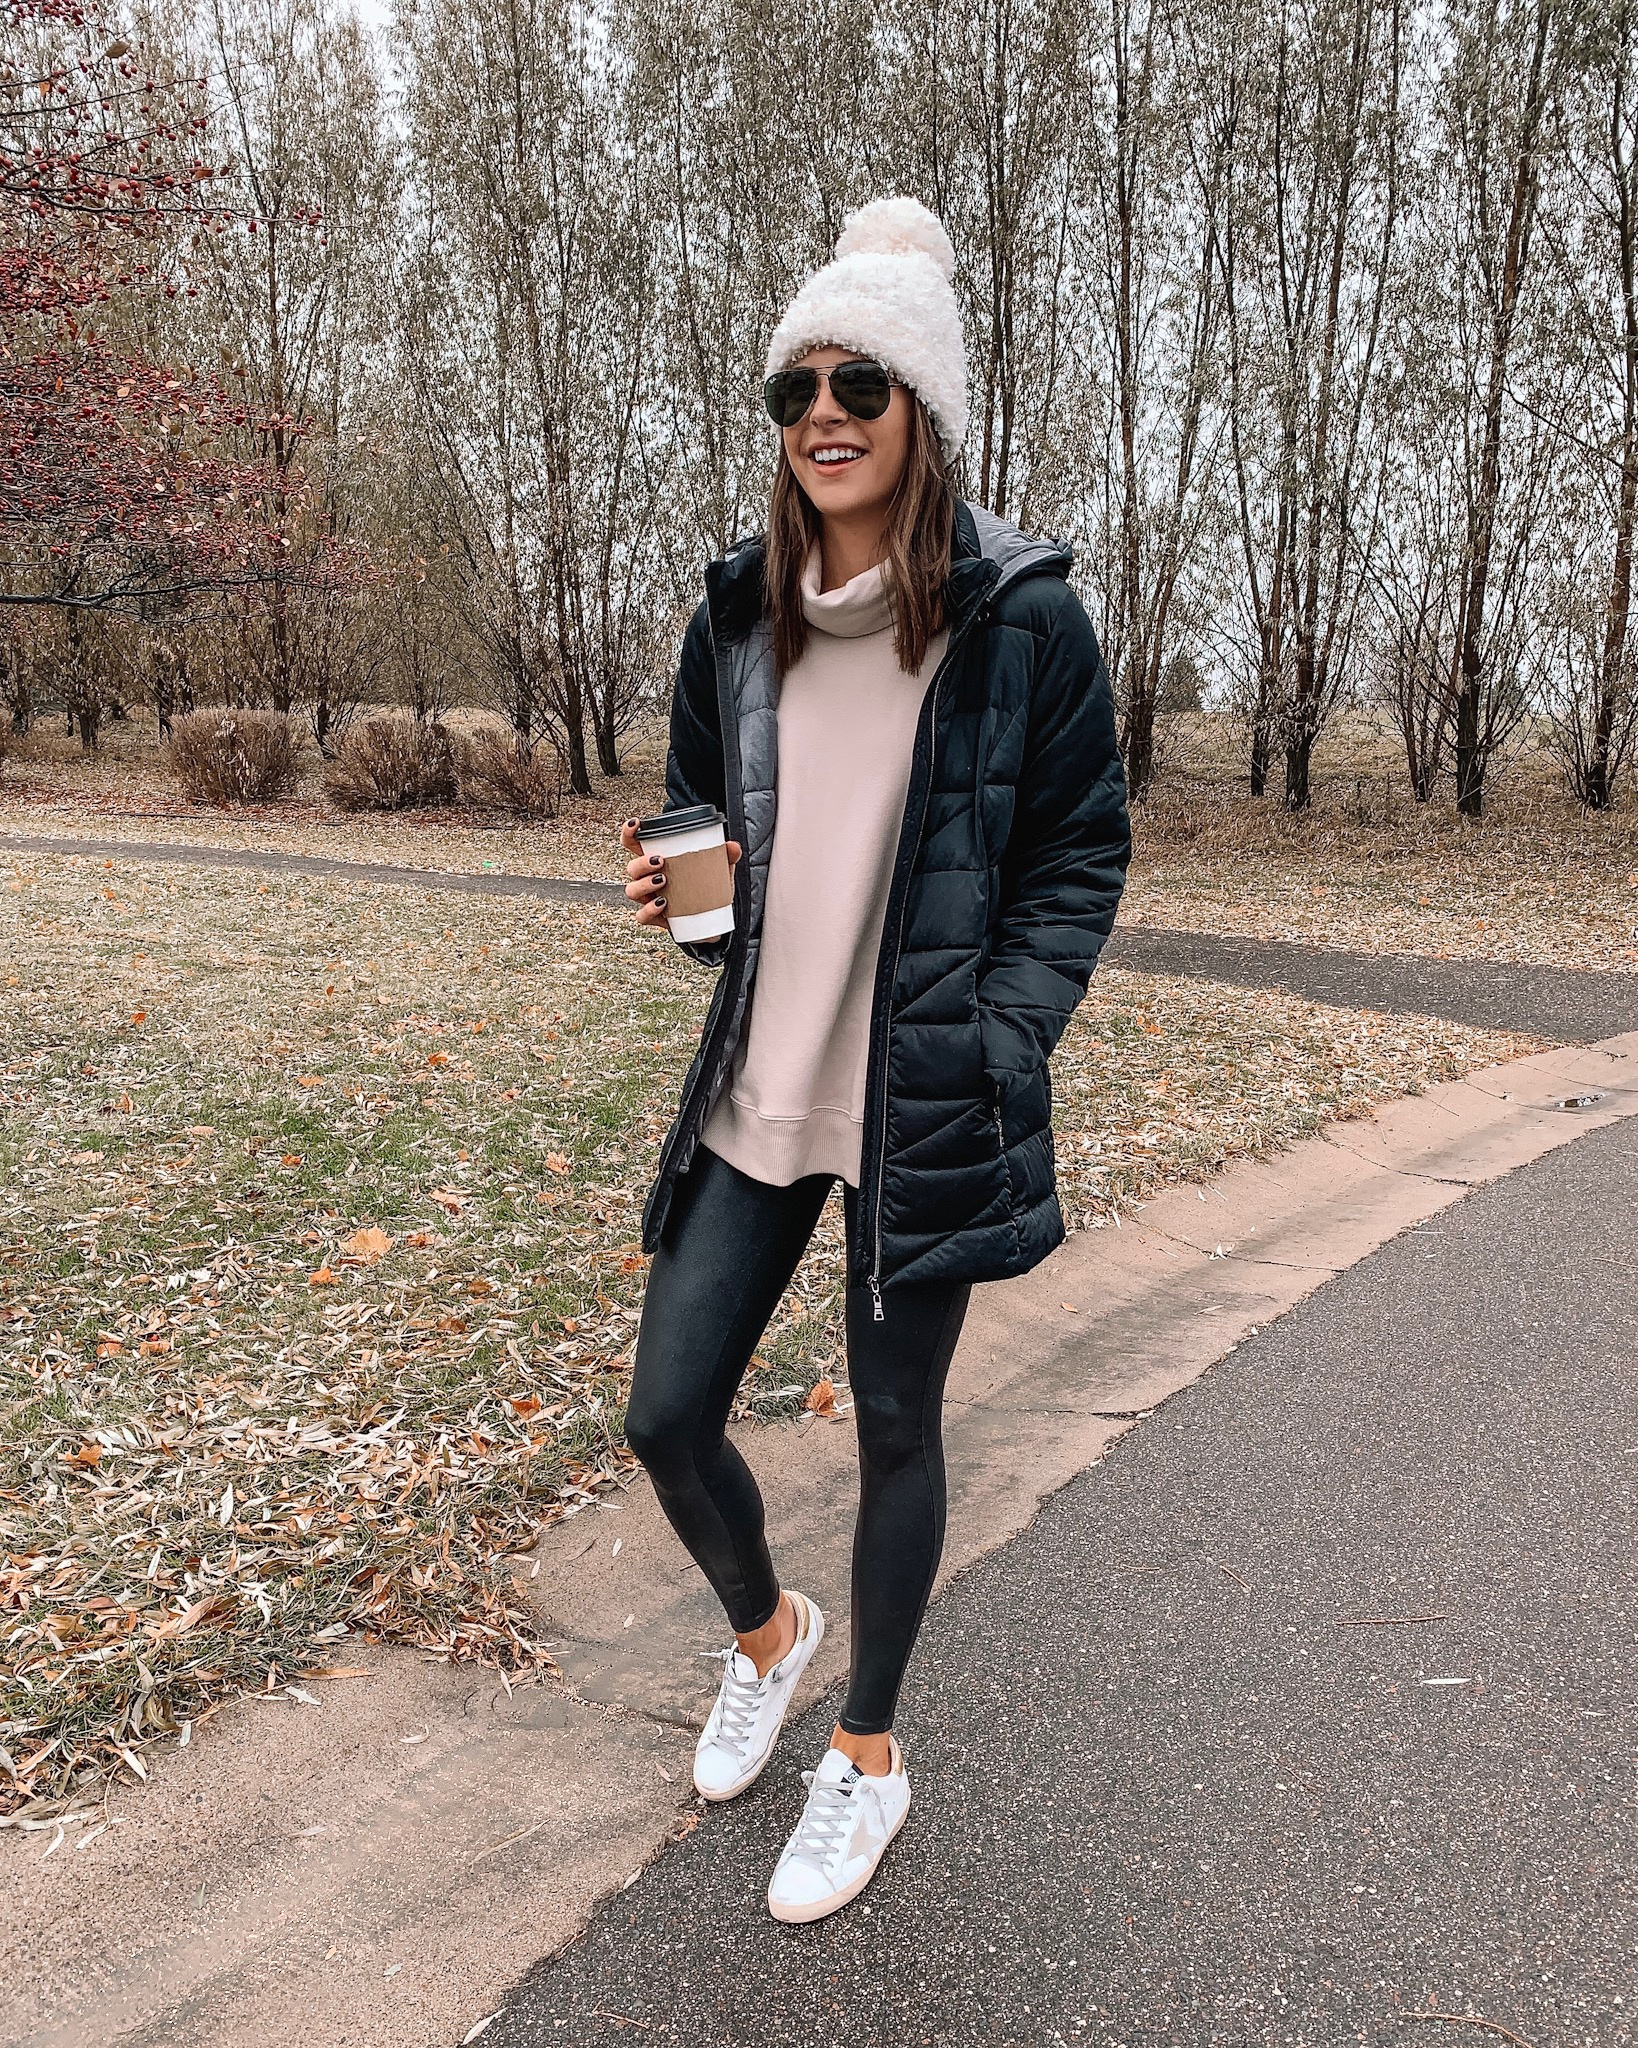 best of Black Friday and cyber Monday sales 2019, black parka jacket women's, golden goose sneakers sale, faux leather leggings